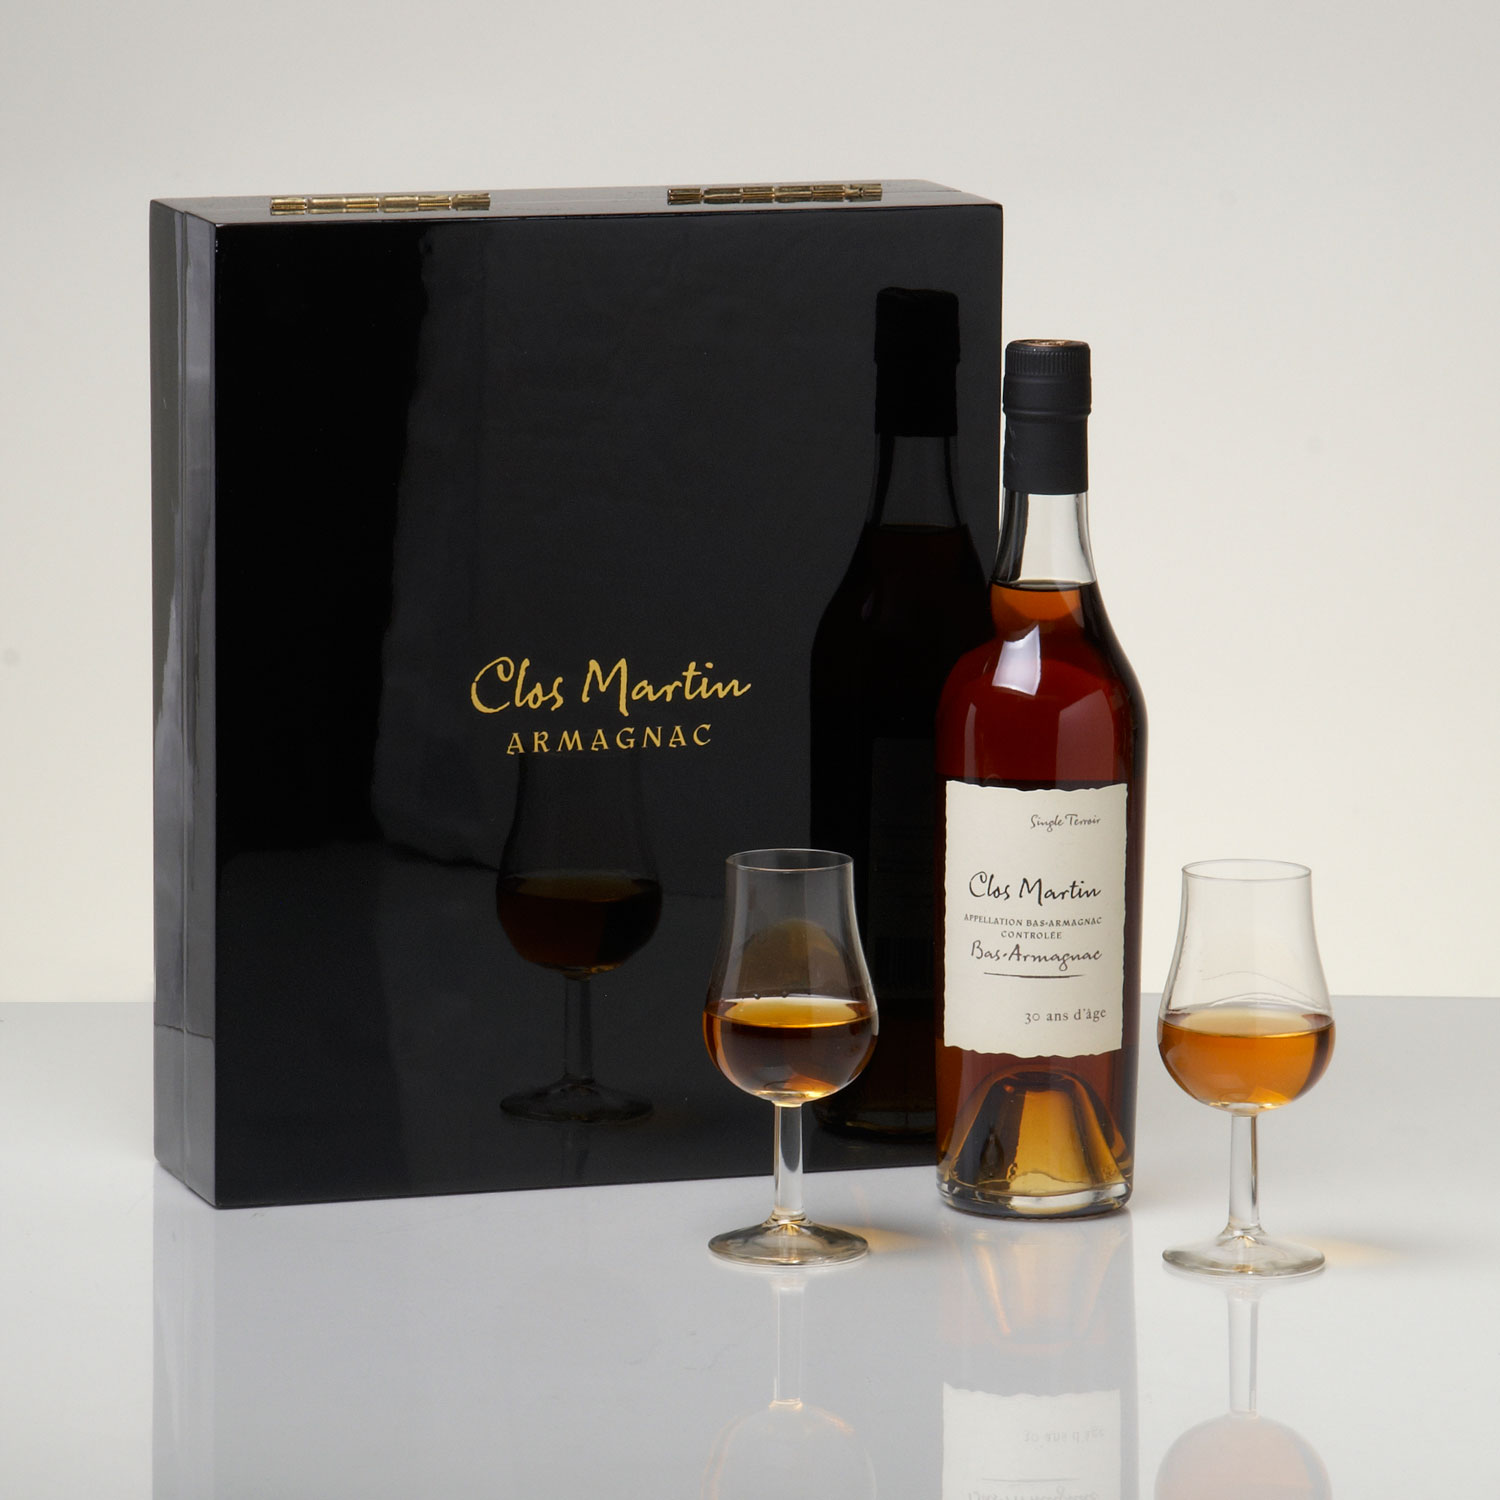 Clos Martin 30 Year Old Armagnac and Glasses in Laquered Presentation Gift Box